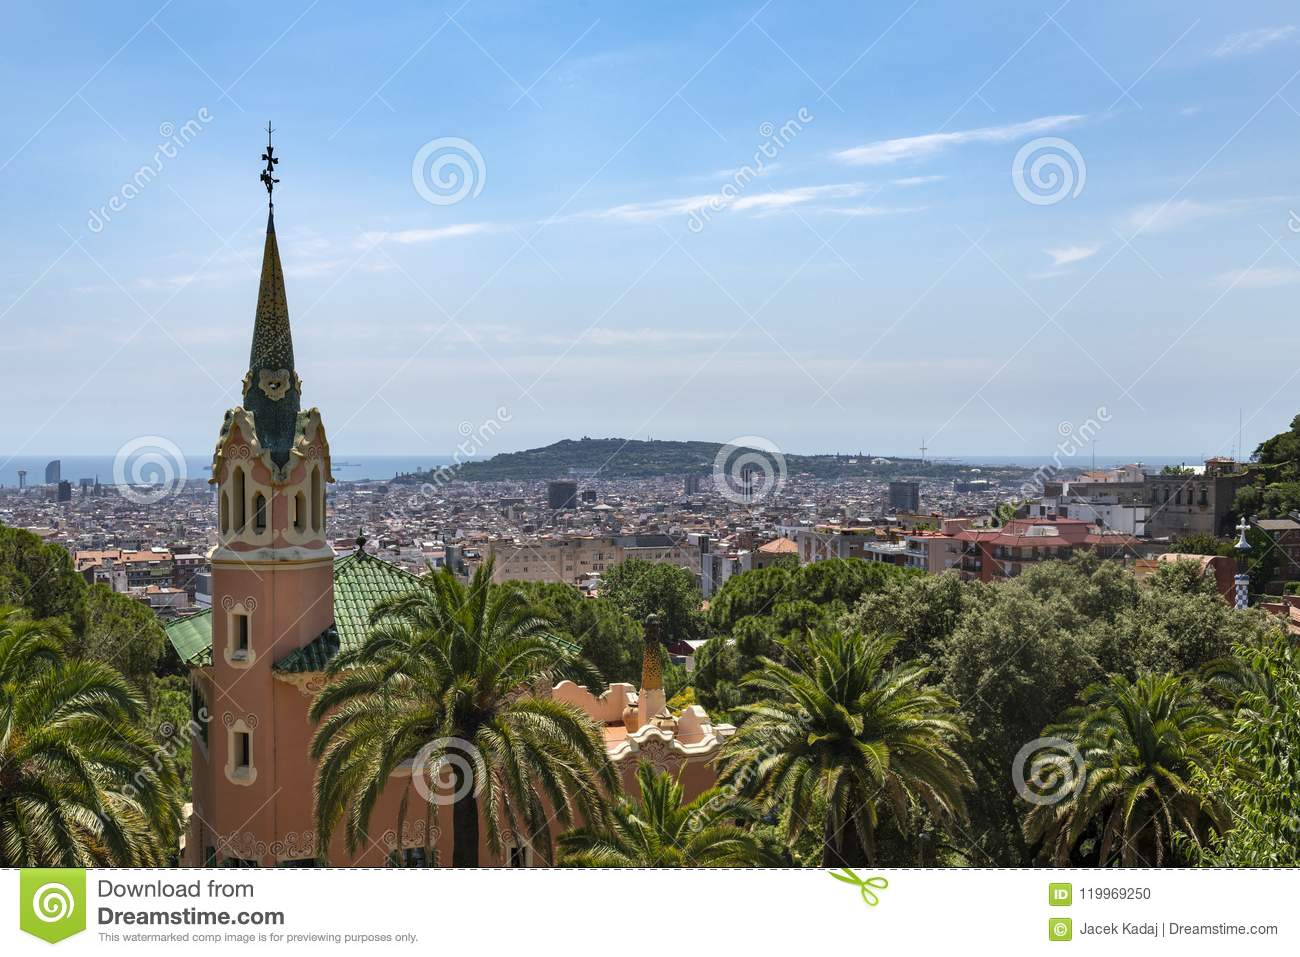 Gaudihuis in park Guell